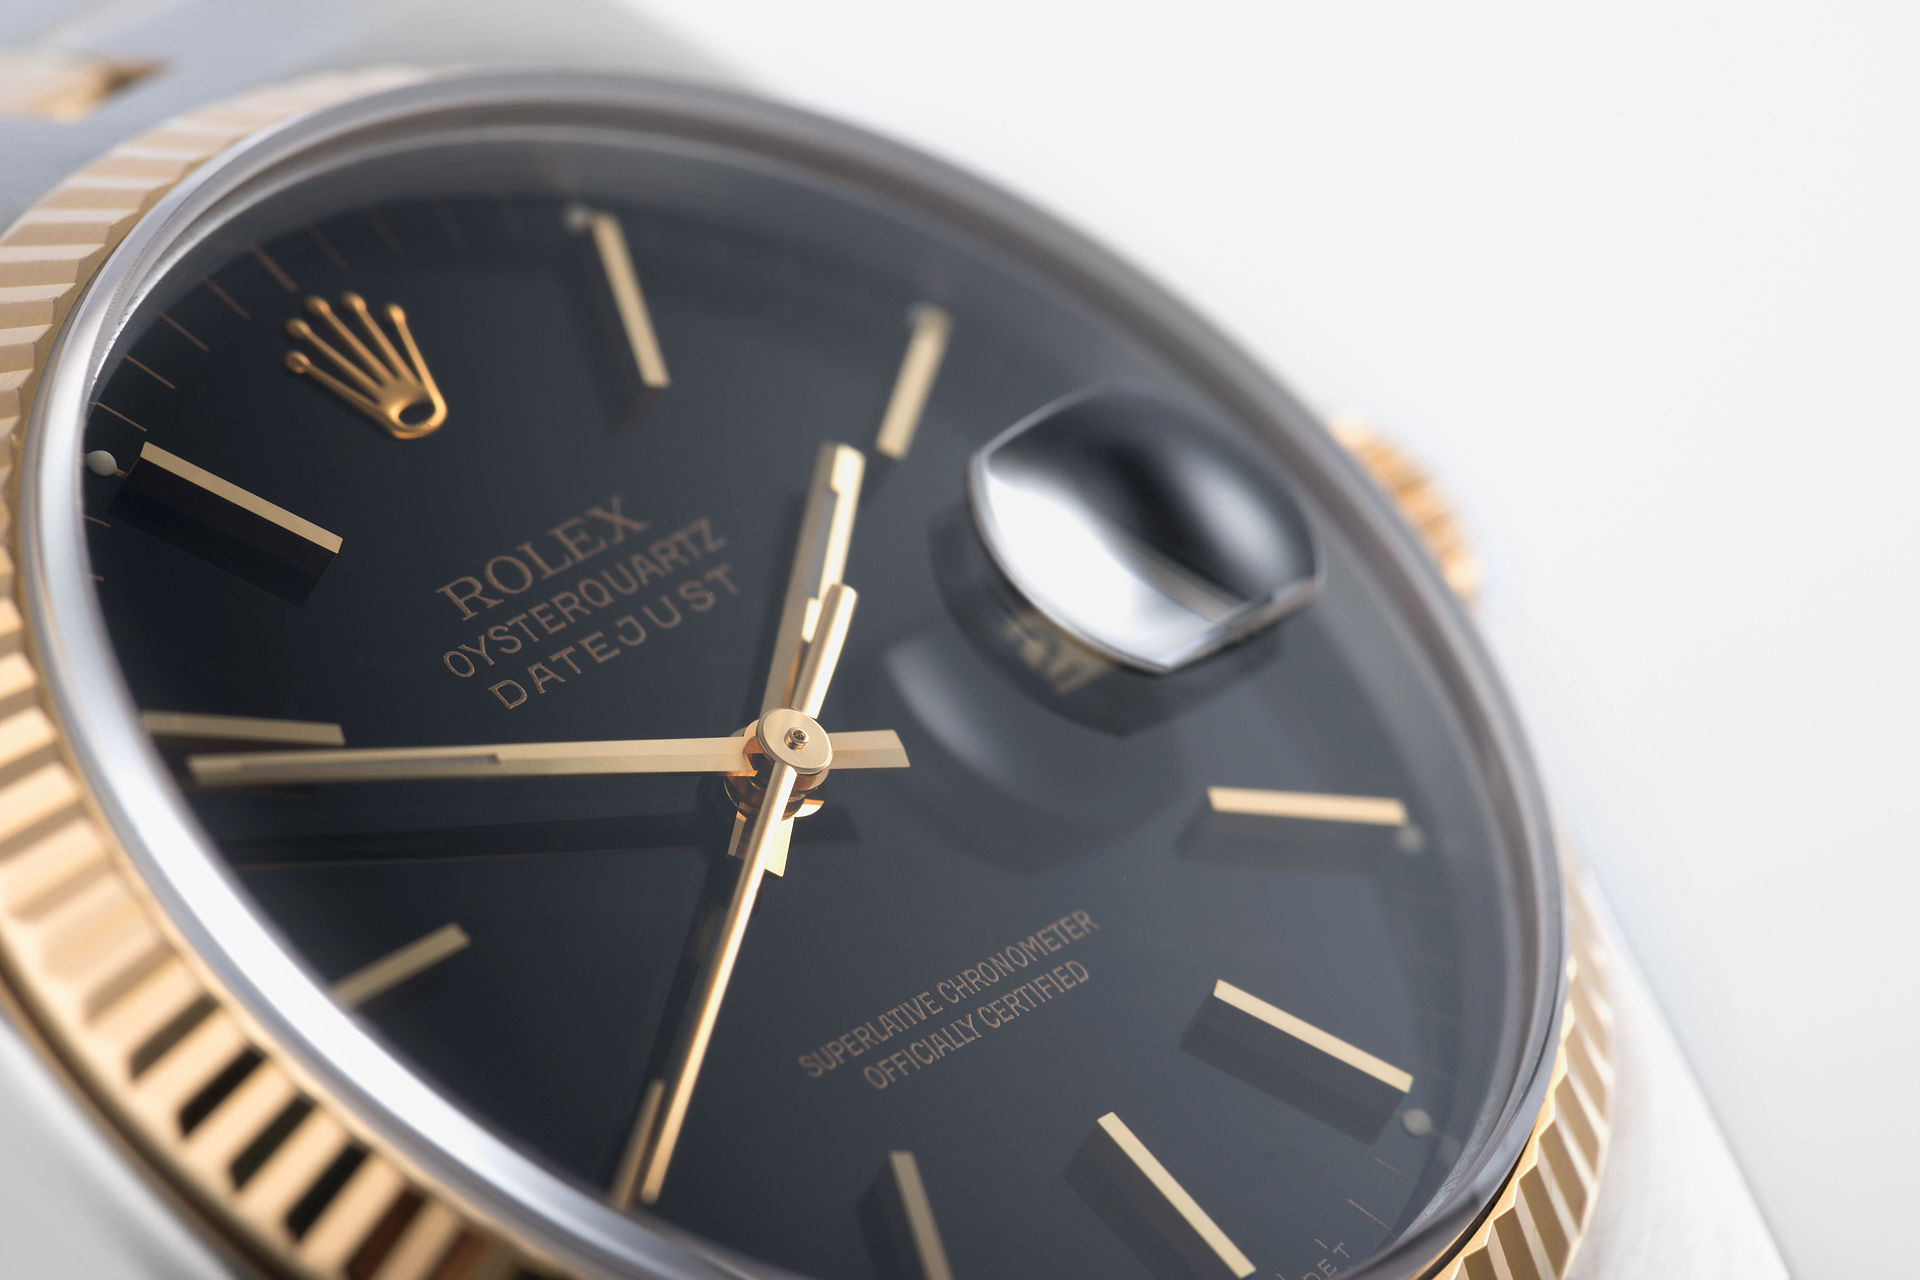 ref 17013 | 'Amazing condition' Gold & Steel | Rolex Datejust